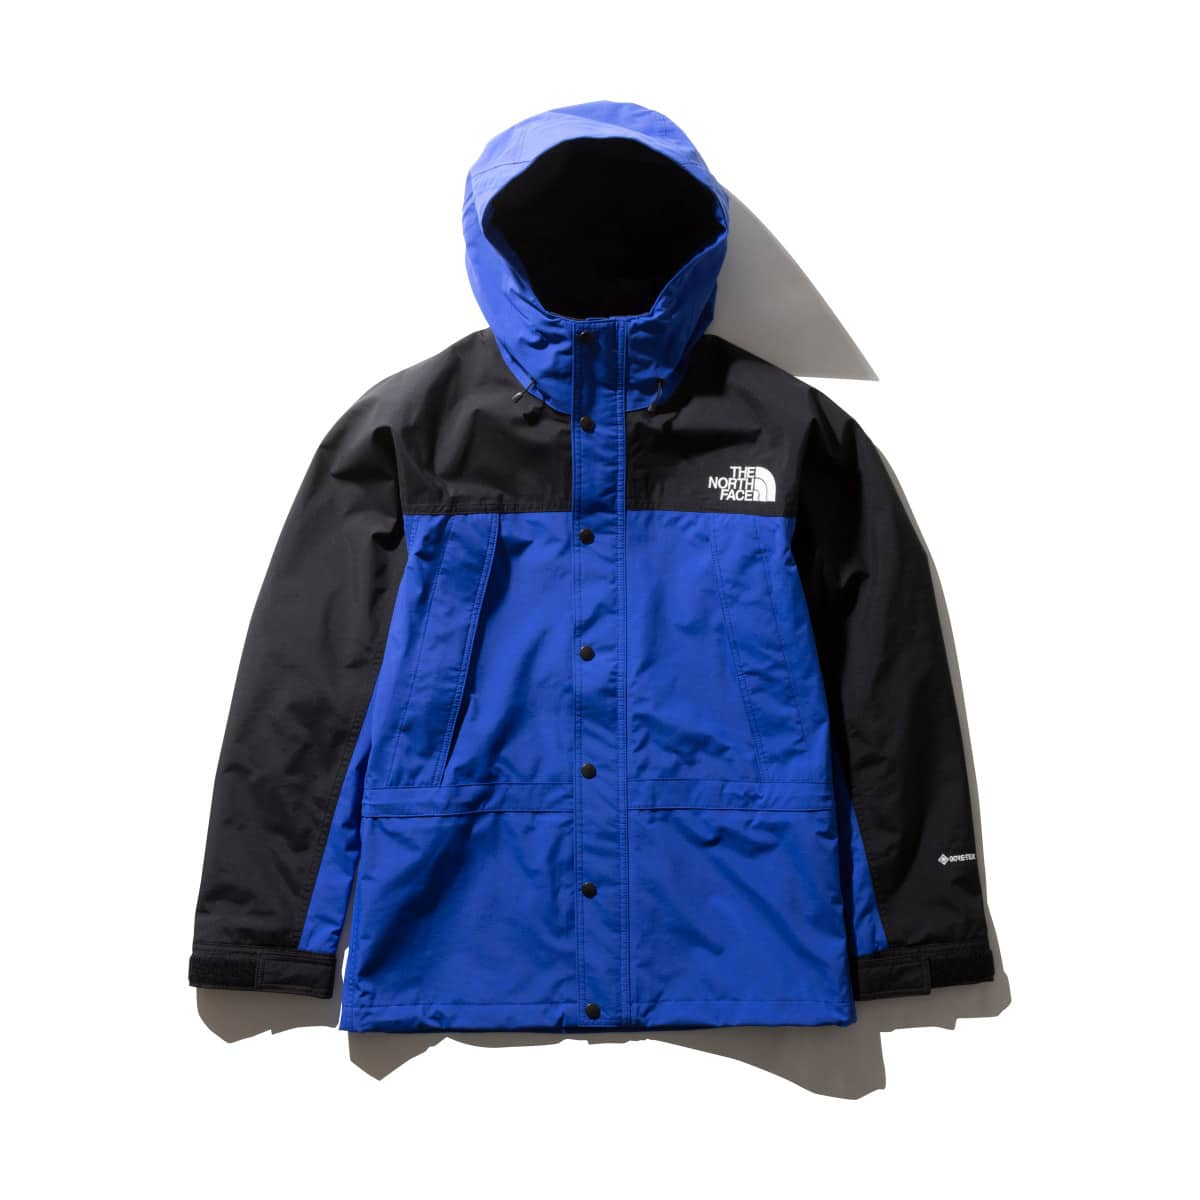 THE NORTH FACE MOUNTAIN LIGHT JK TNF ブルー 19FW-I_photo_large